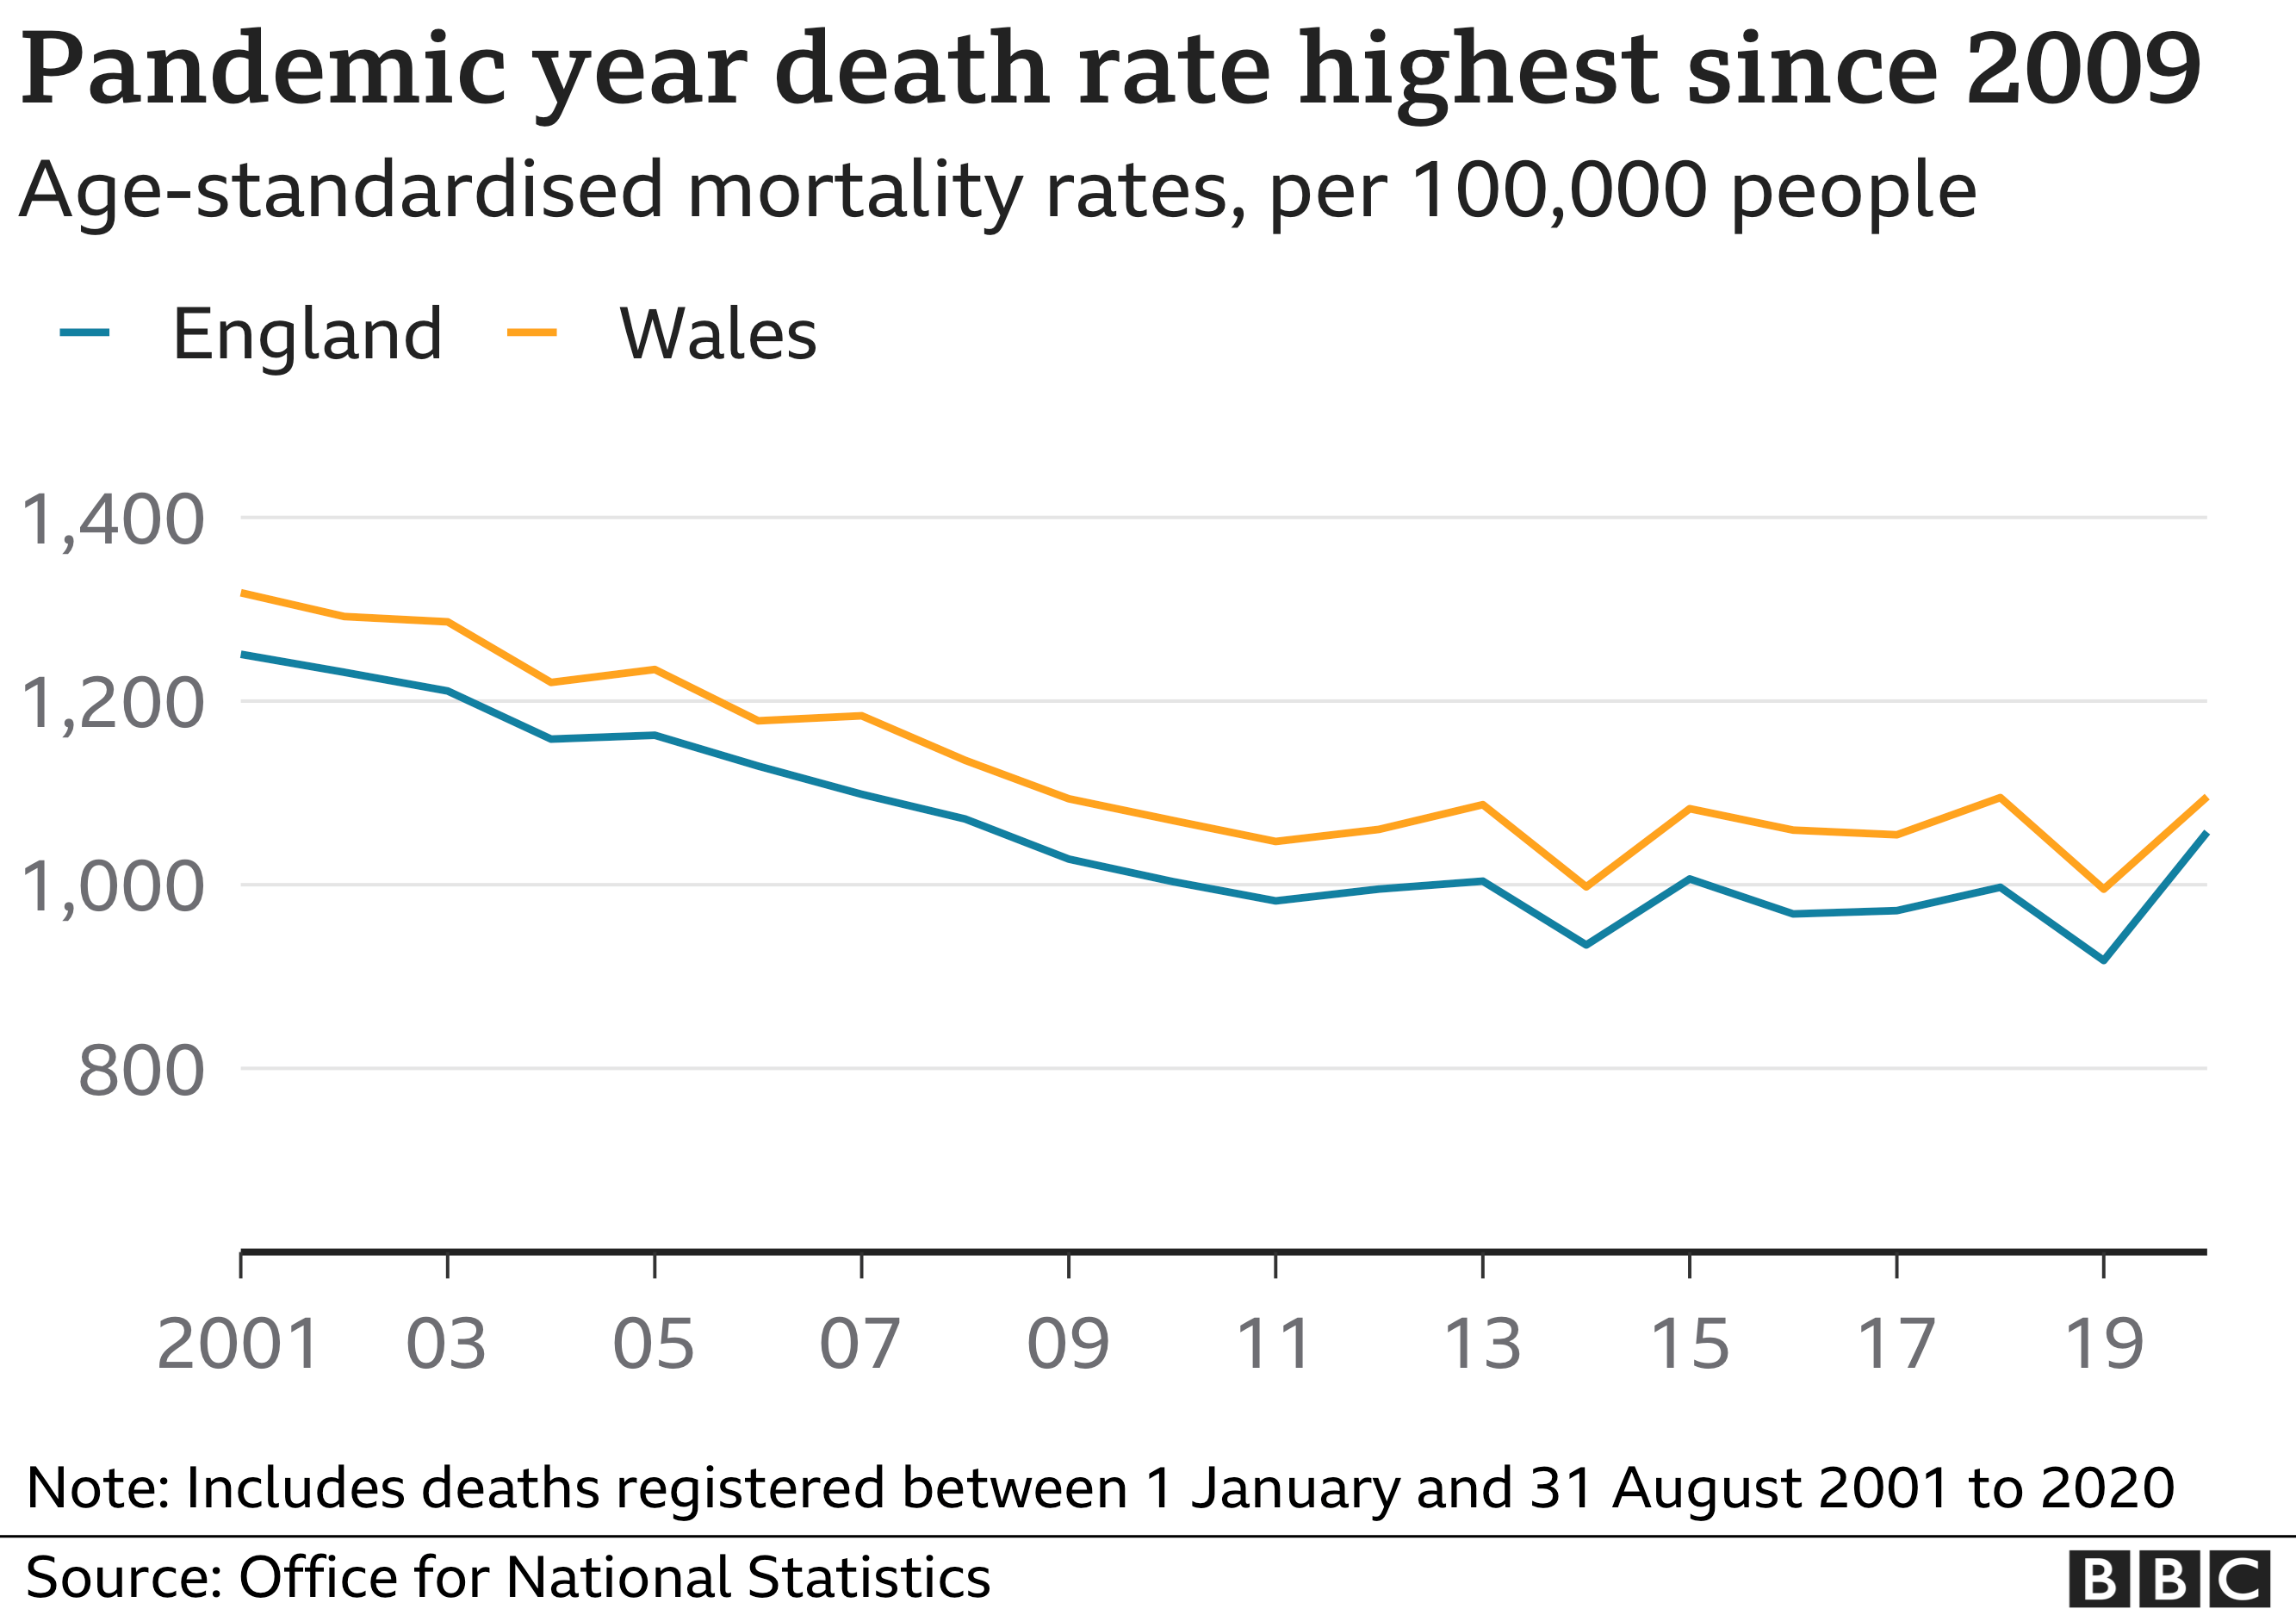 Chart showing mortality rates 2001-2019 in England and Wales